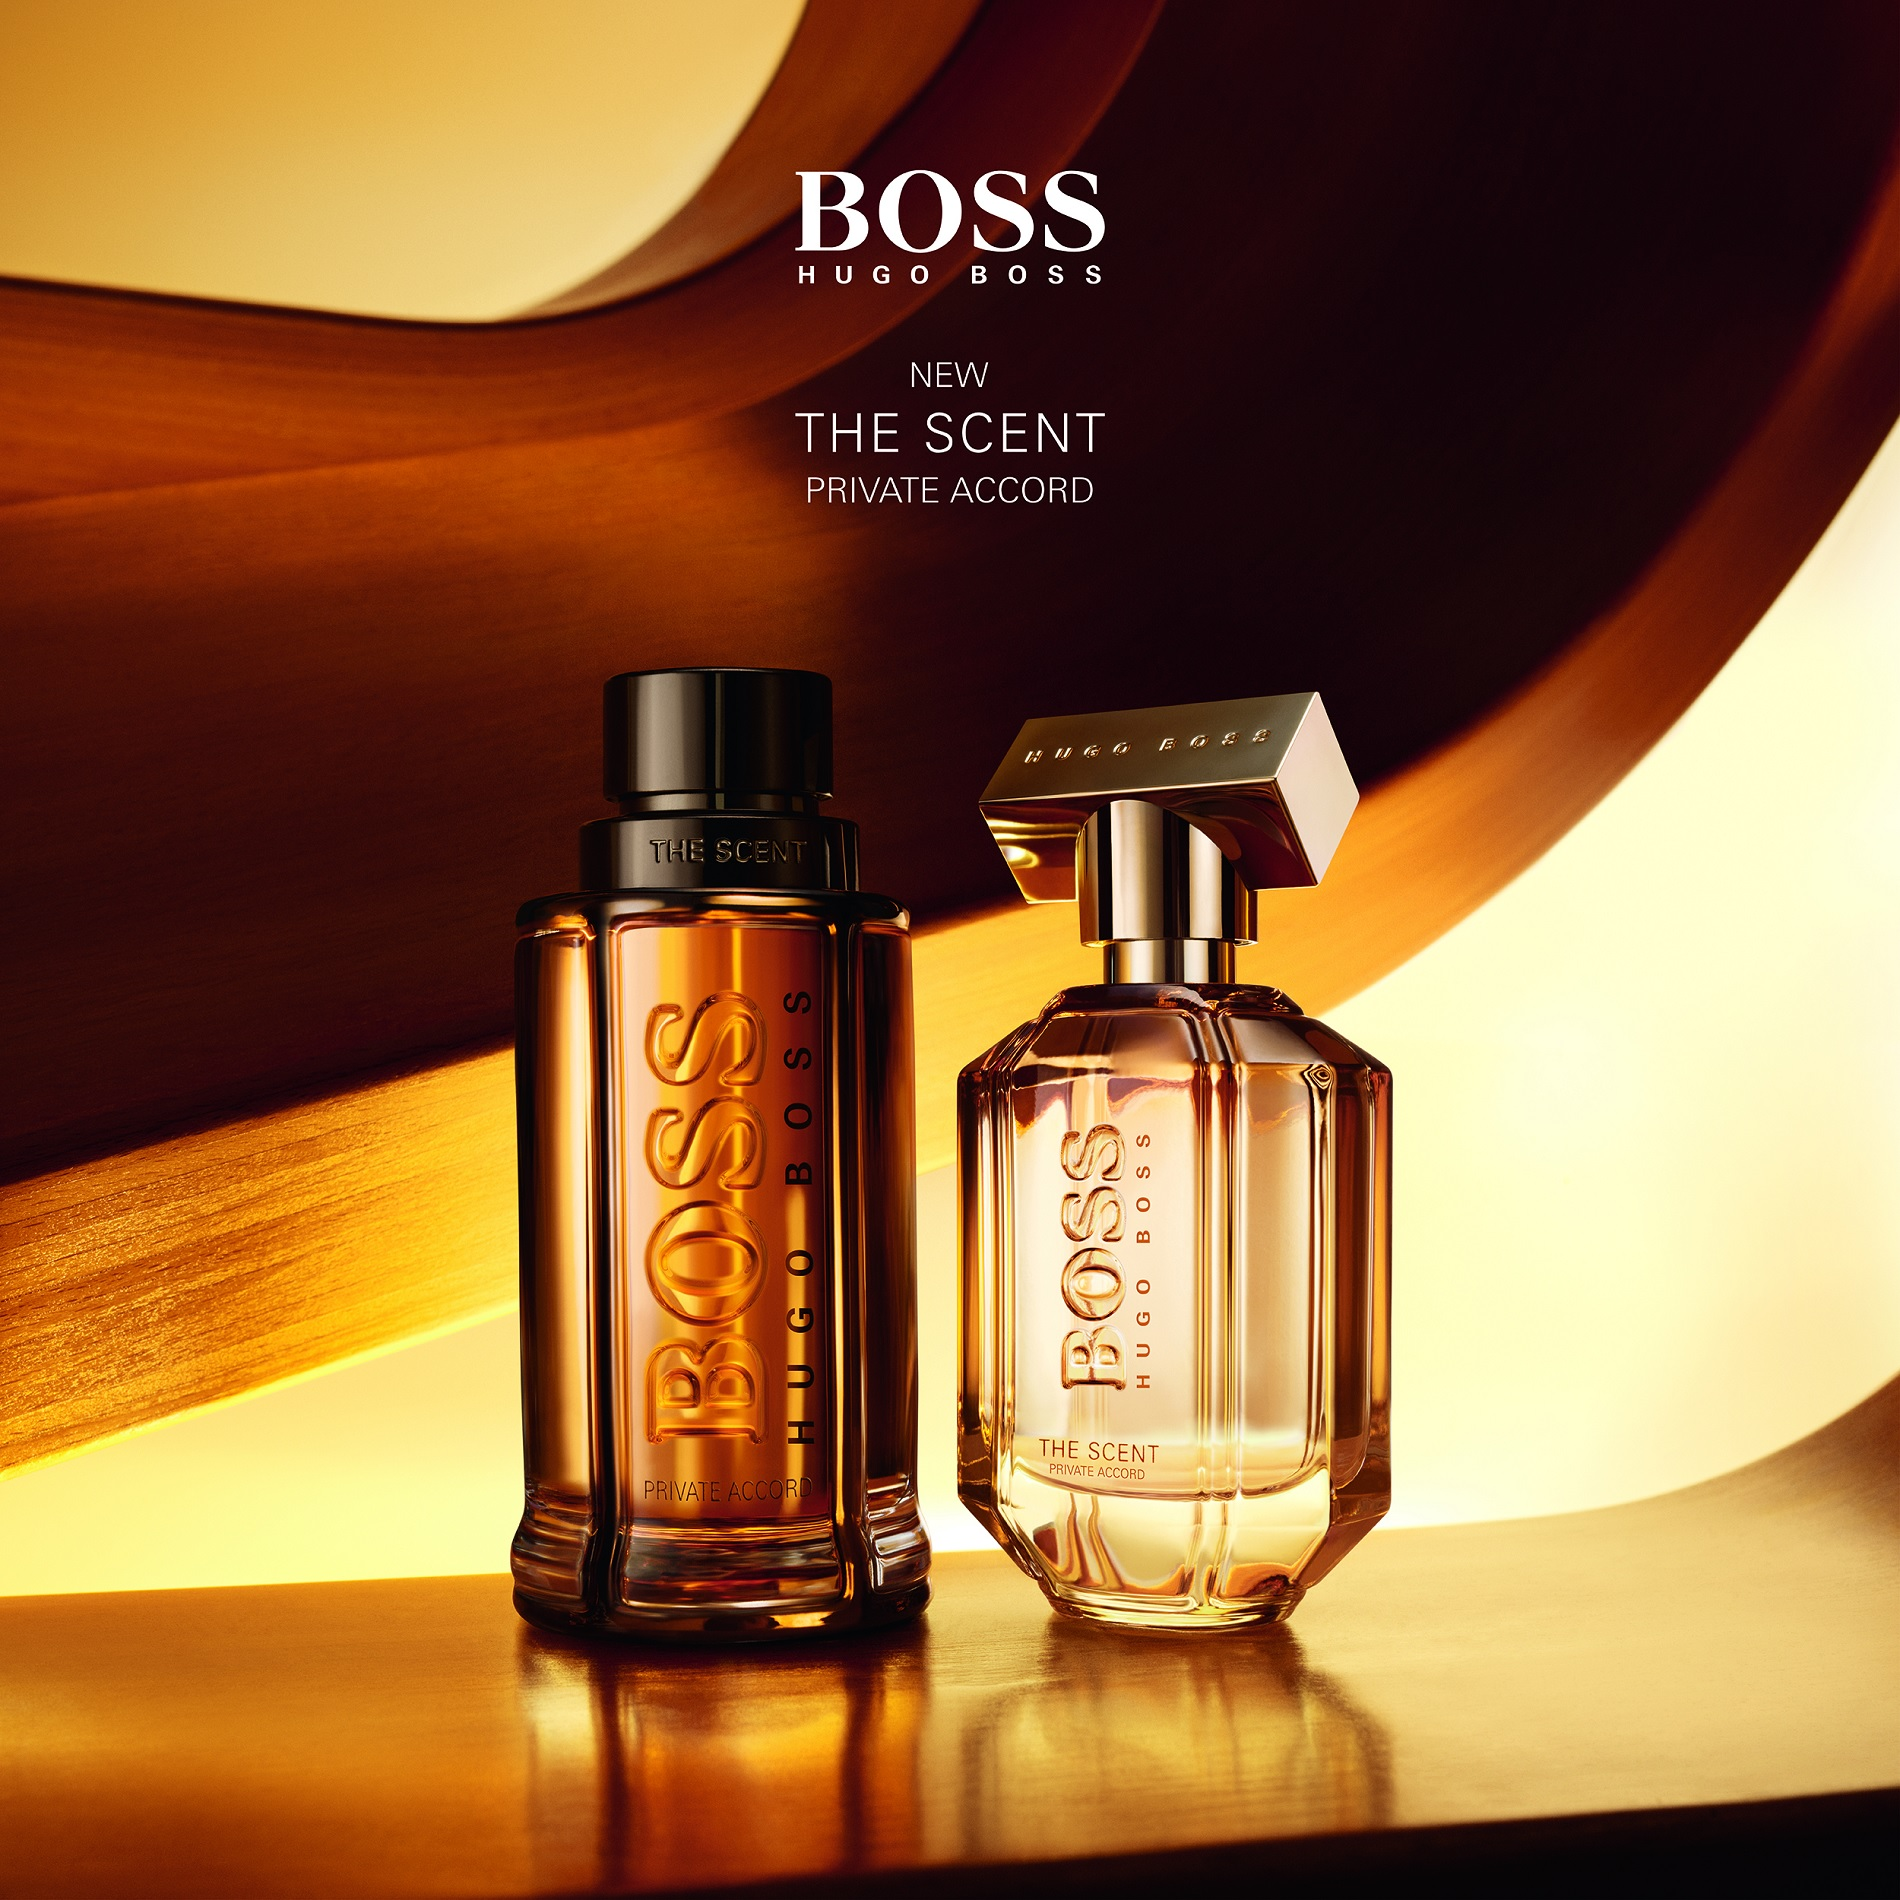 ugo boss  Boss The Scent Private Accord Hugo Boss cologne - a new fragrance ...